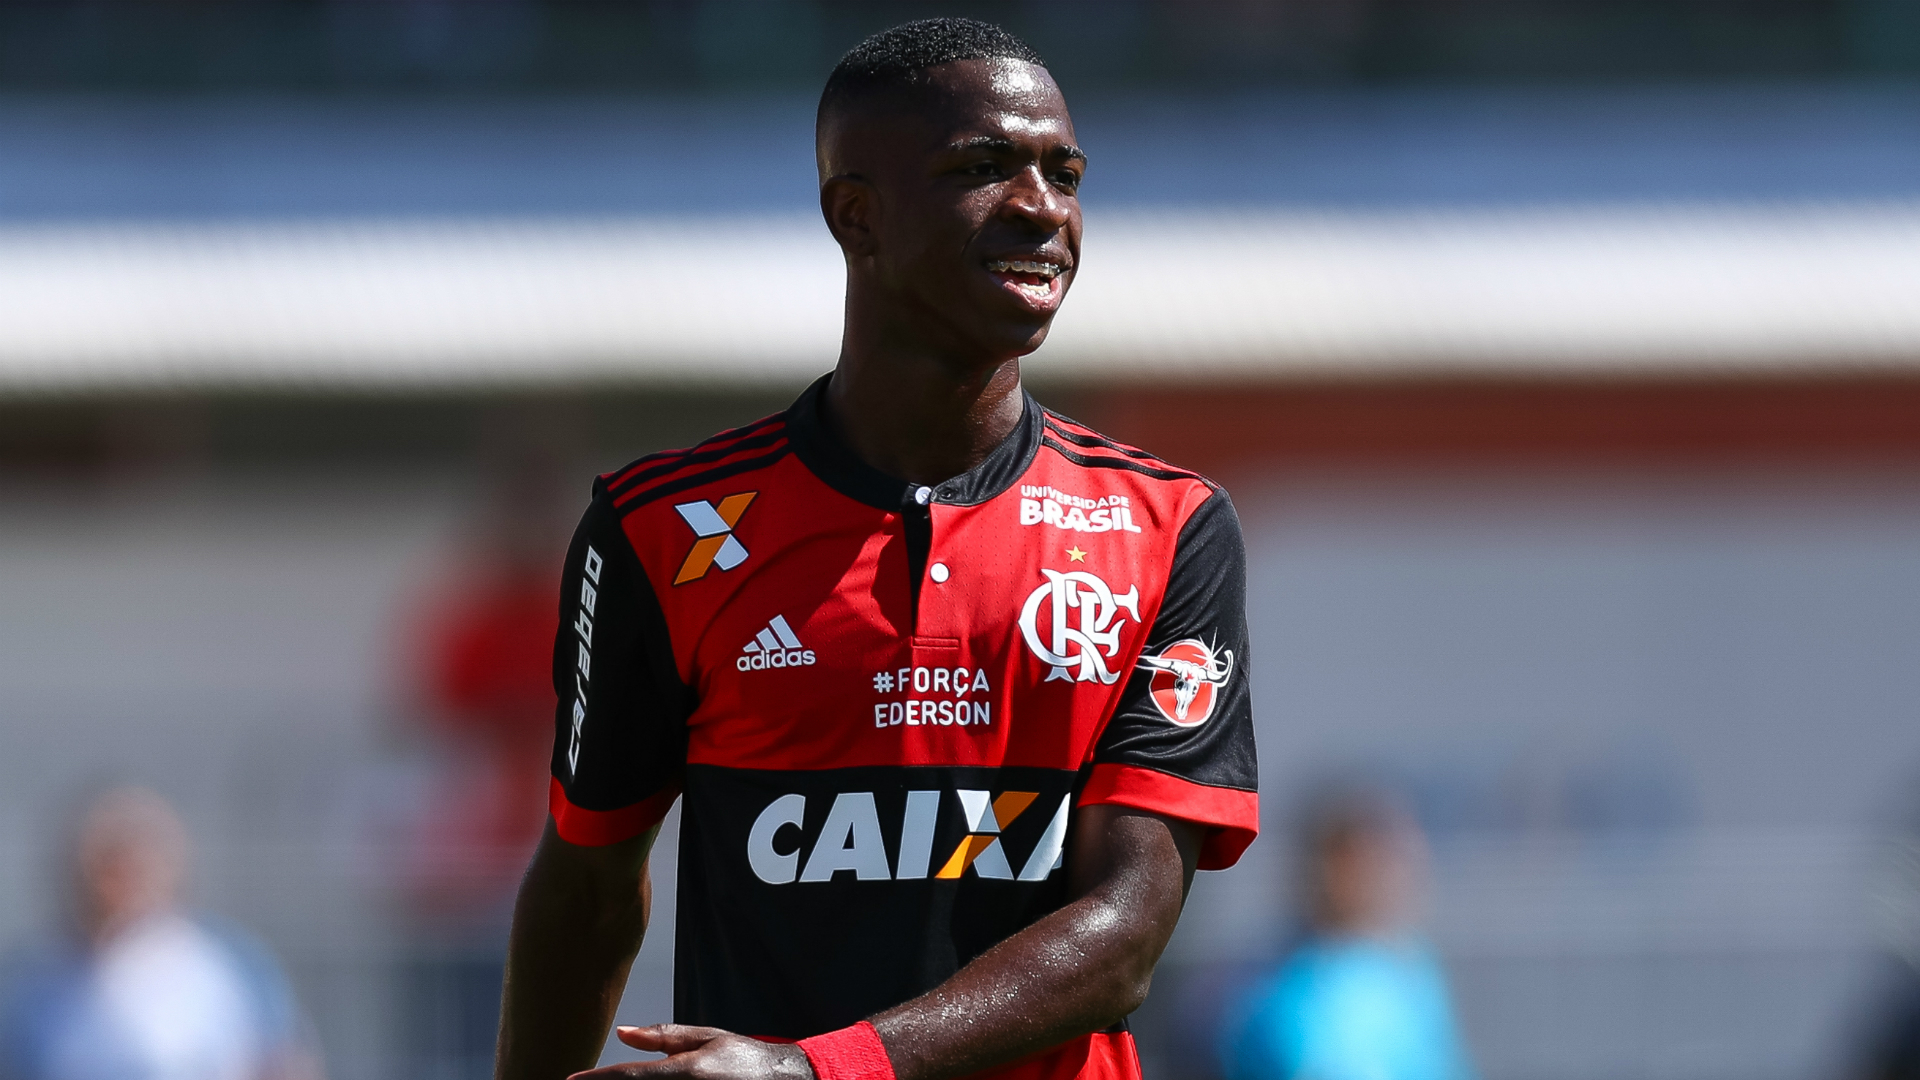 Real Madrid-bound Vinicius scores first professional goal for Flamengo.  Brazilian ... 32a08c497a1f7